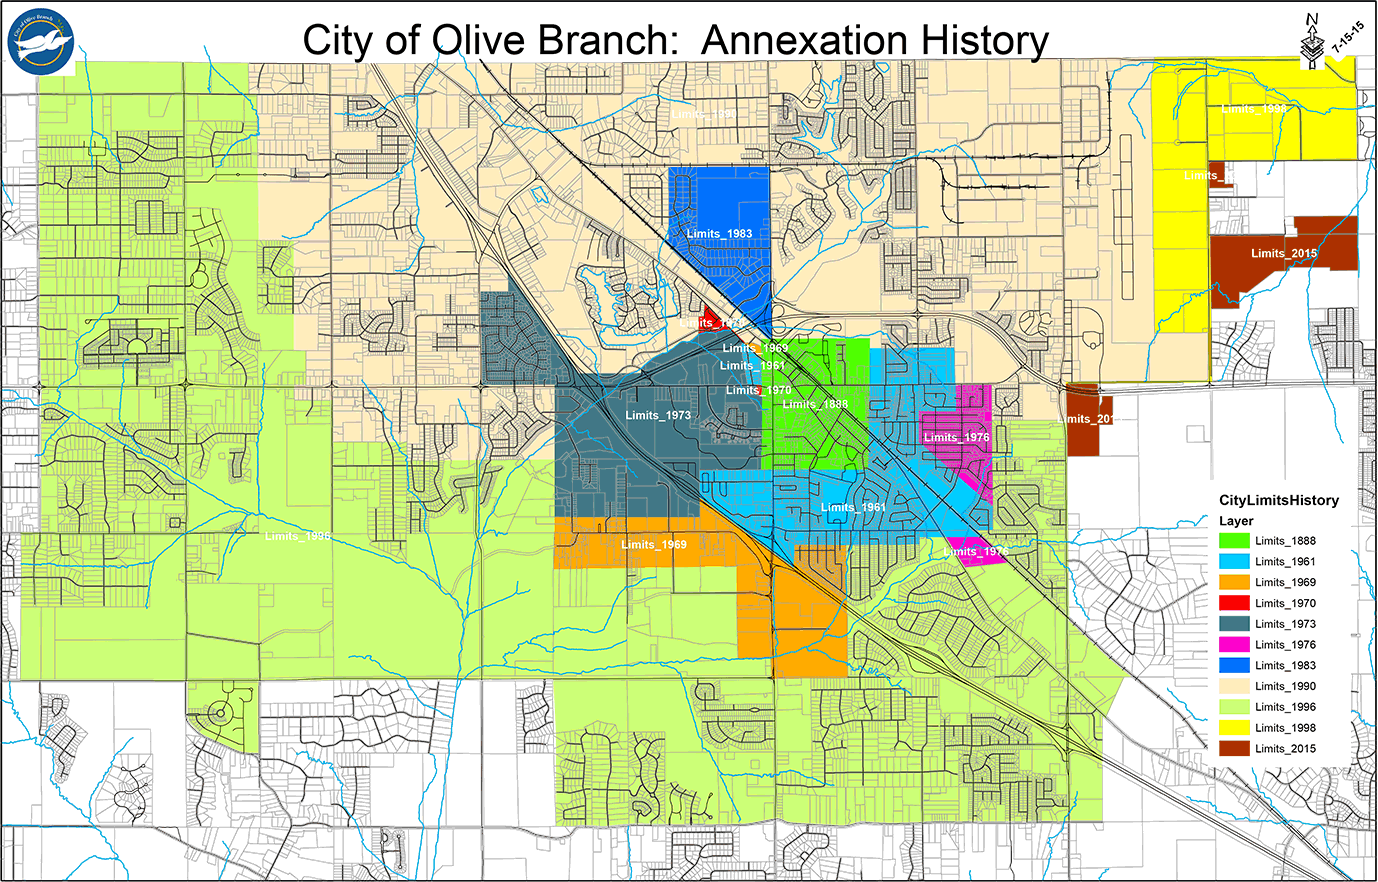 Olive Branch Annexation History